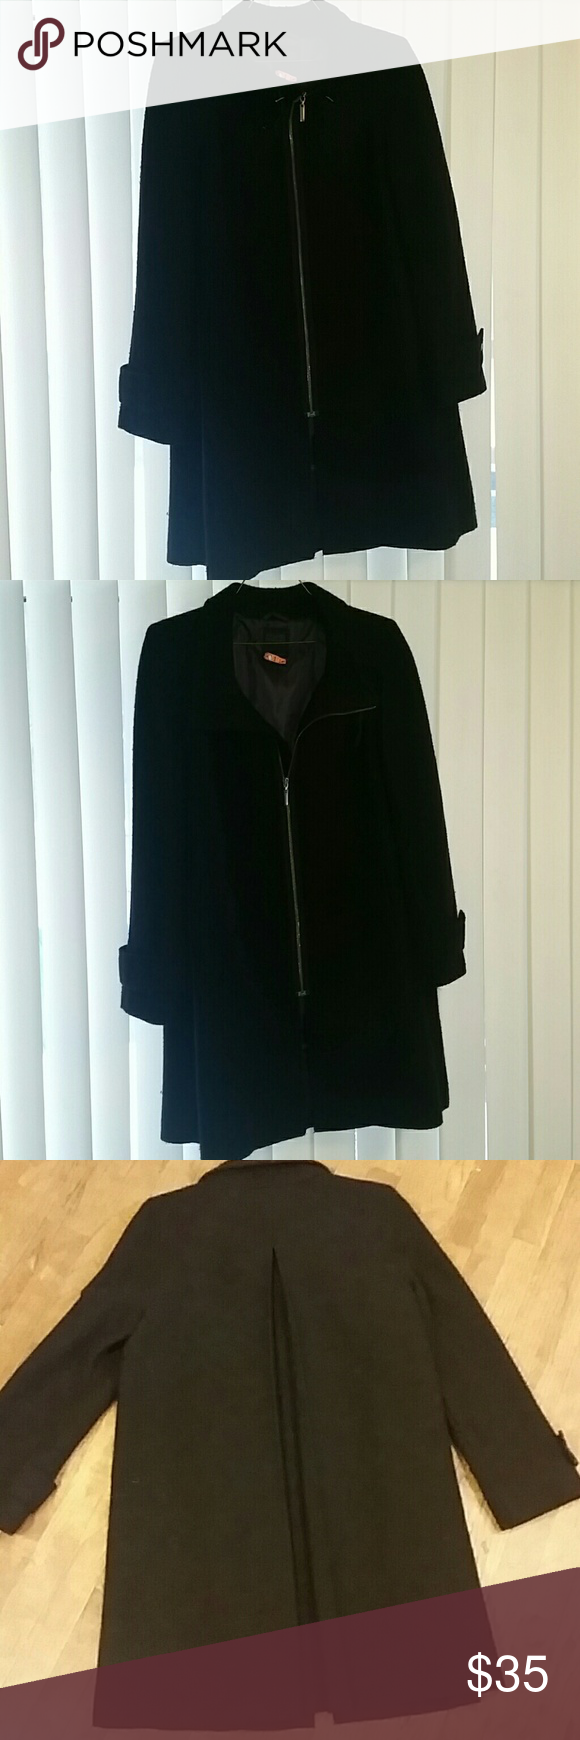 Hilary Radley peacoat This is a lovely peacoat from Hilary Radley.. worn multiple times.. still in great condition..  size 12 Knee length..  exterior 100% wool..  interior 100% polyester hilary radley  Jackets & Coats Pea Coats